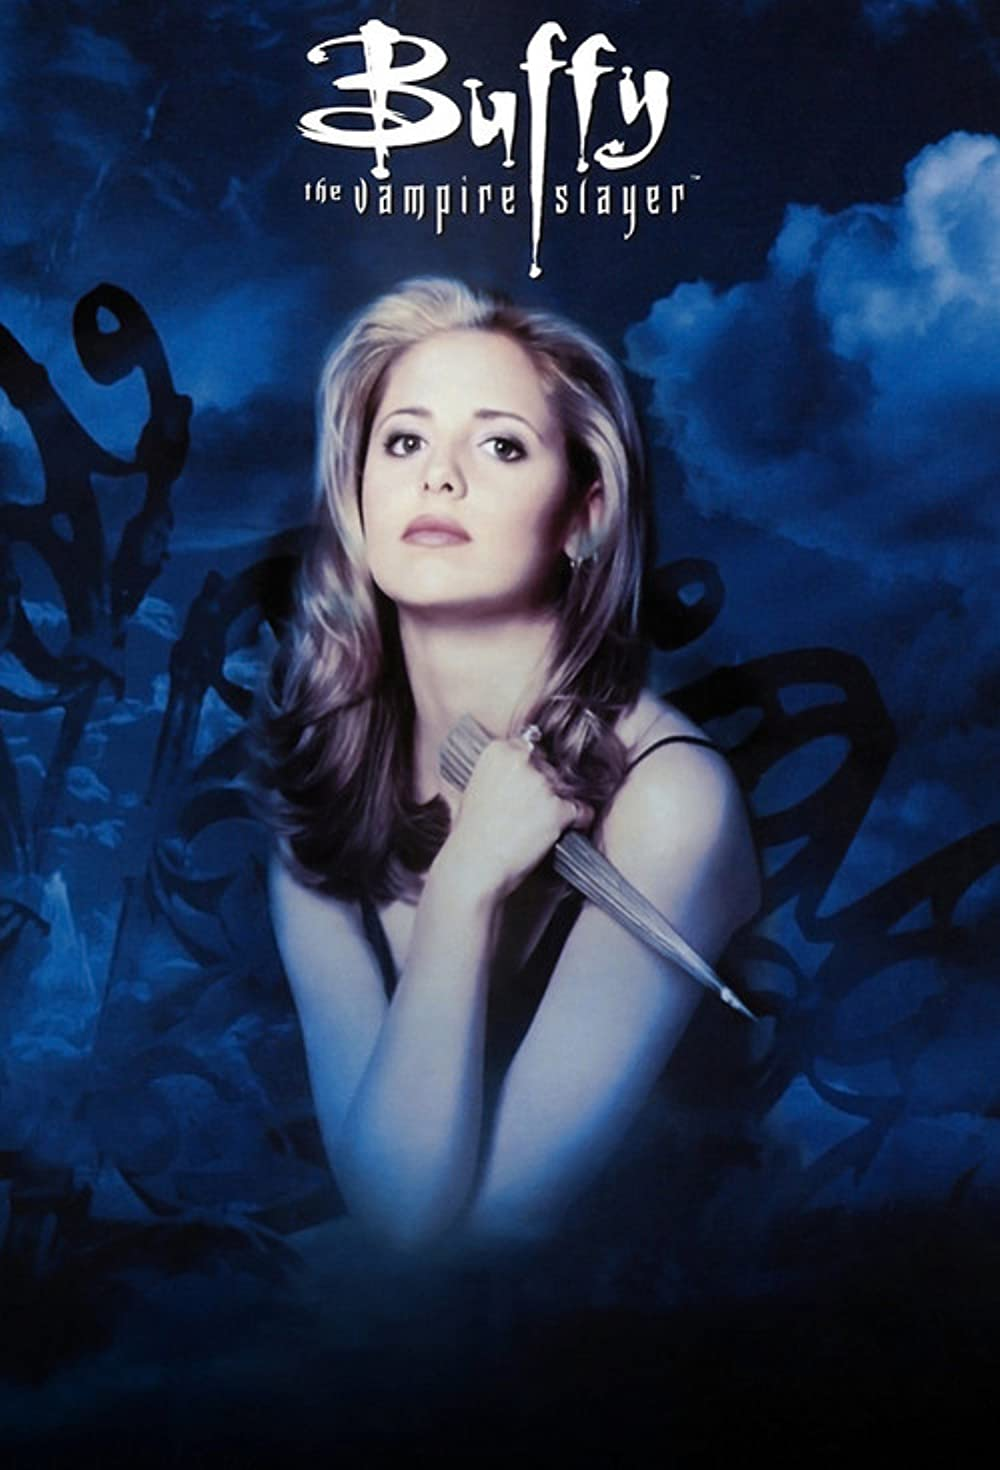 Buffy the Vampire Slayer (Buffy contre les vampires)